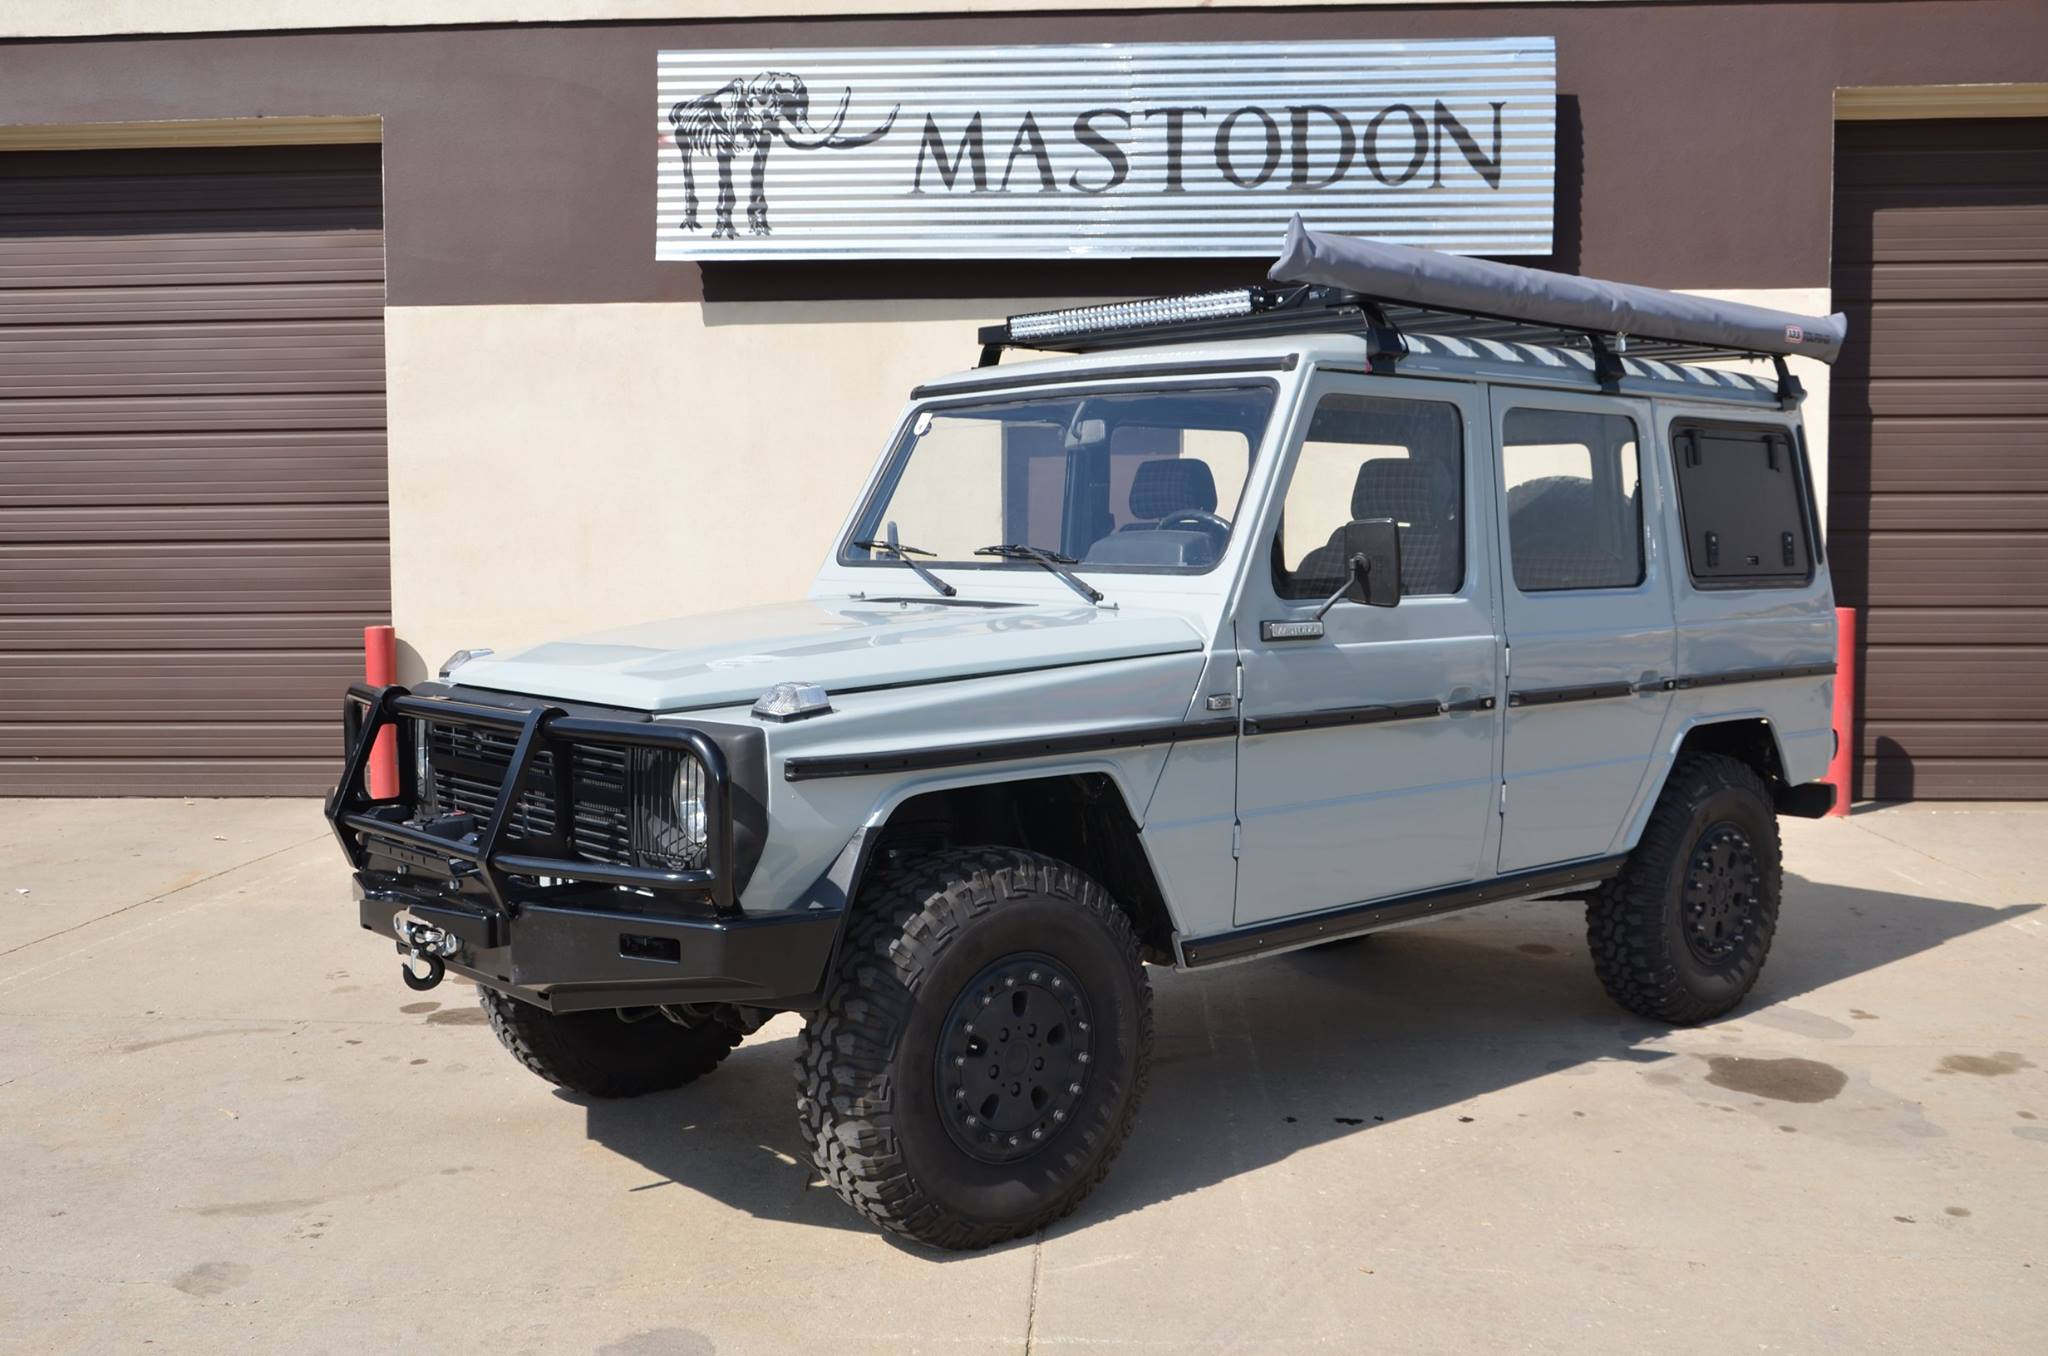 How to Have a G-Wagon That's Cheap and Original Using Army Surplus